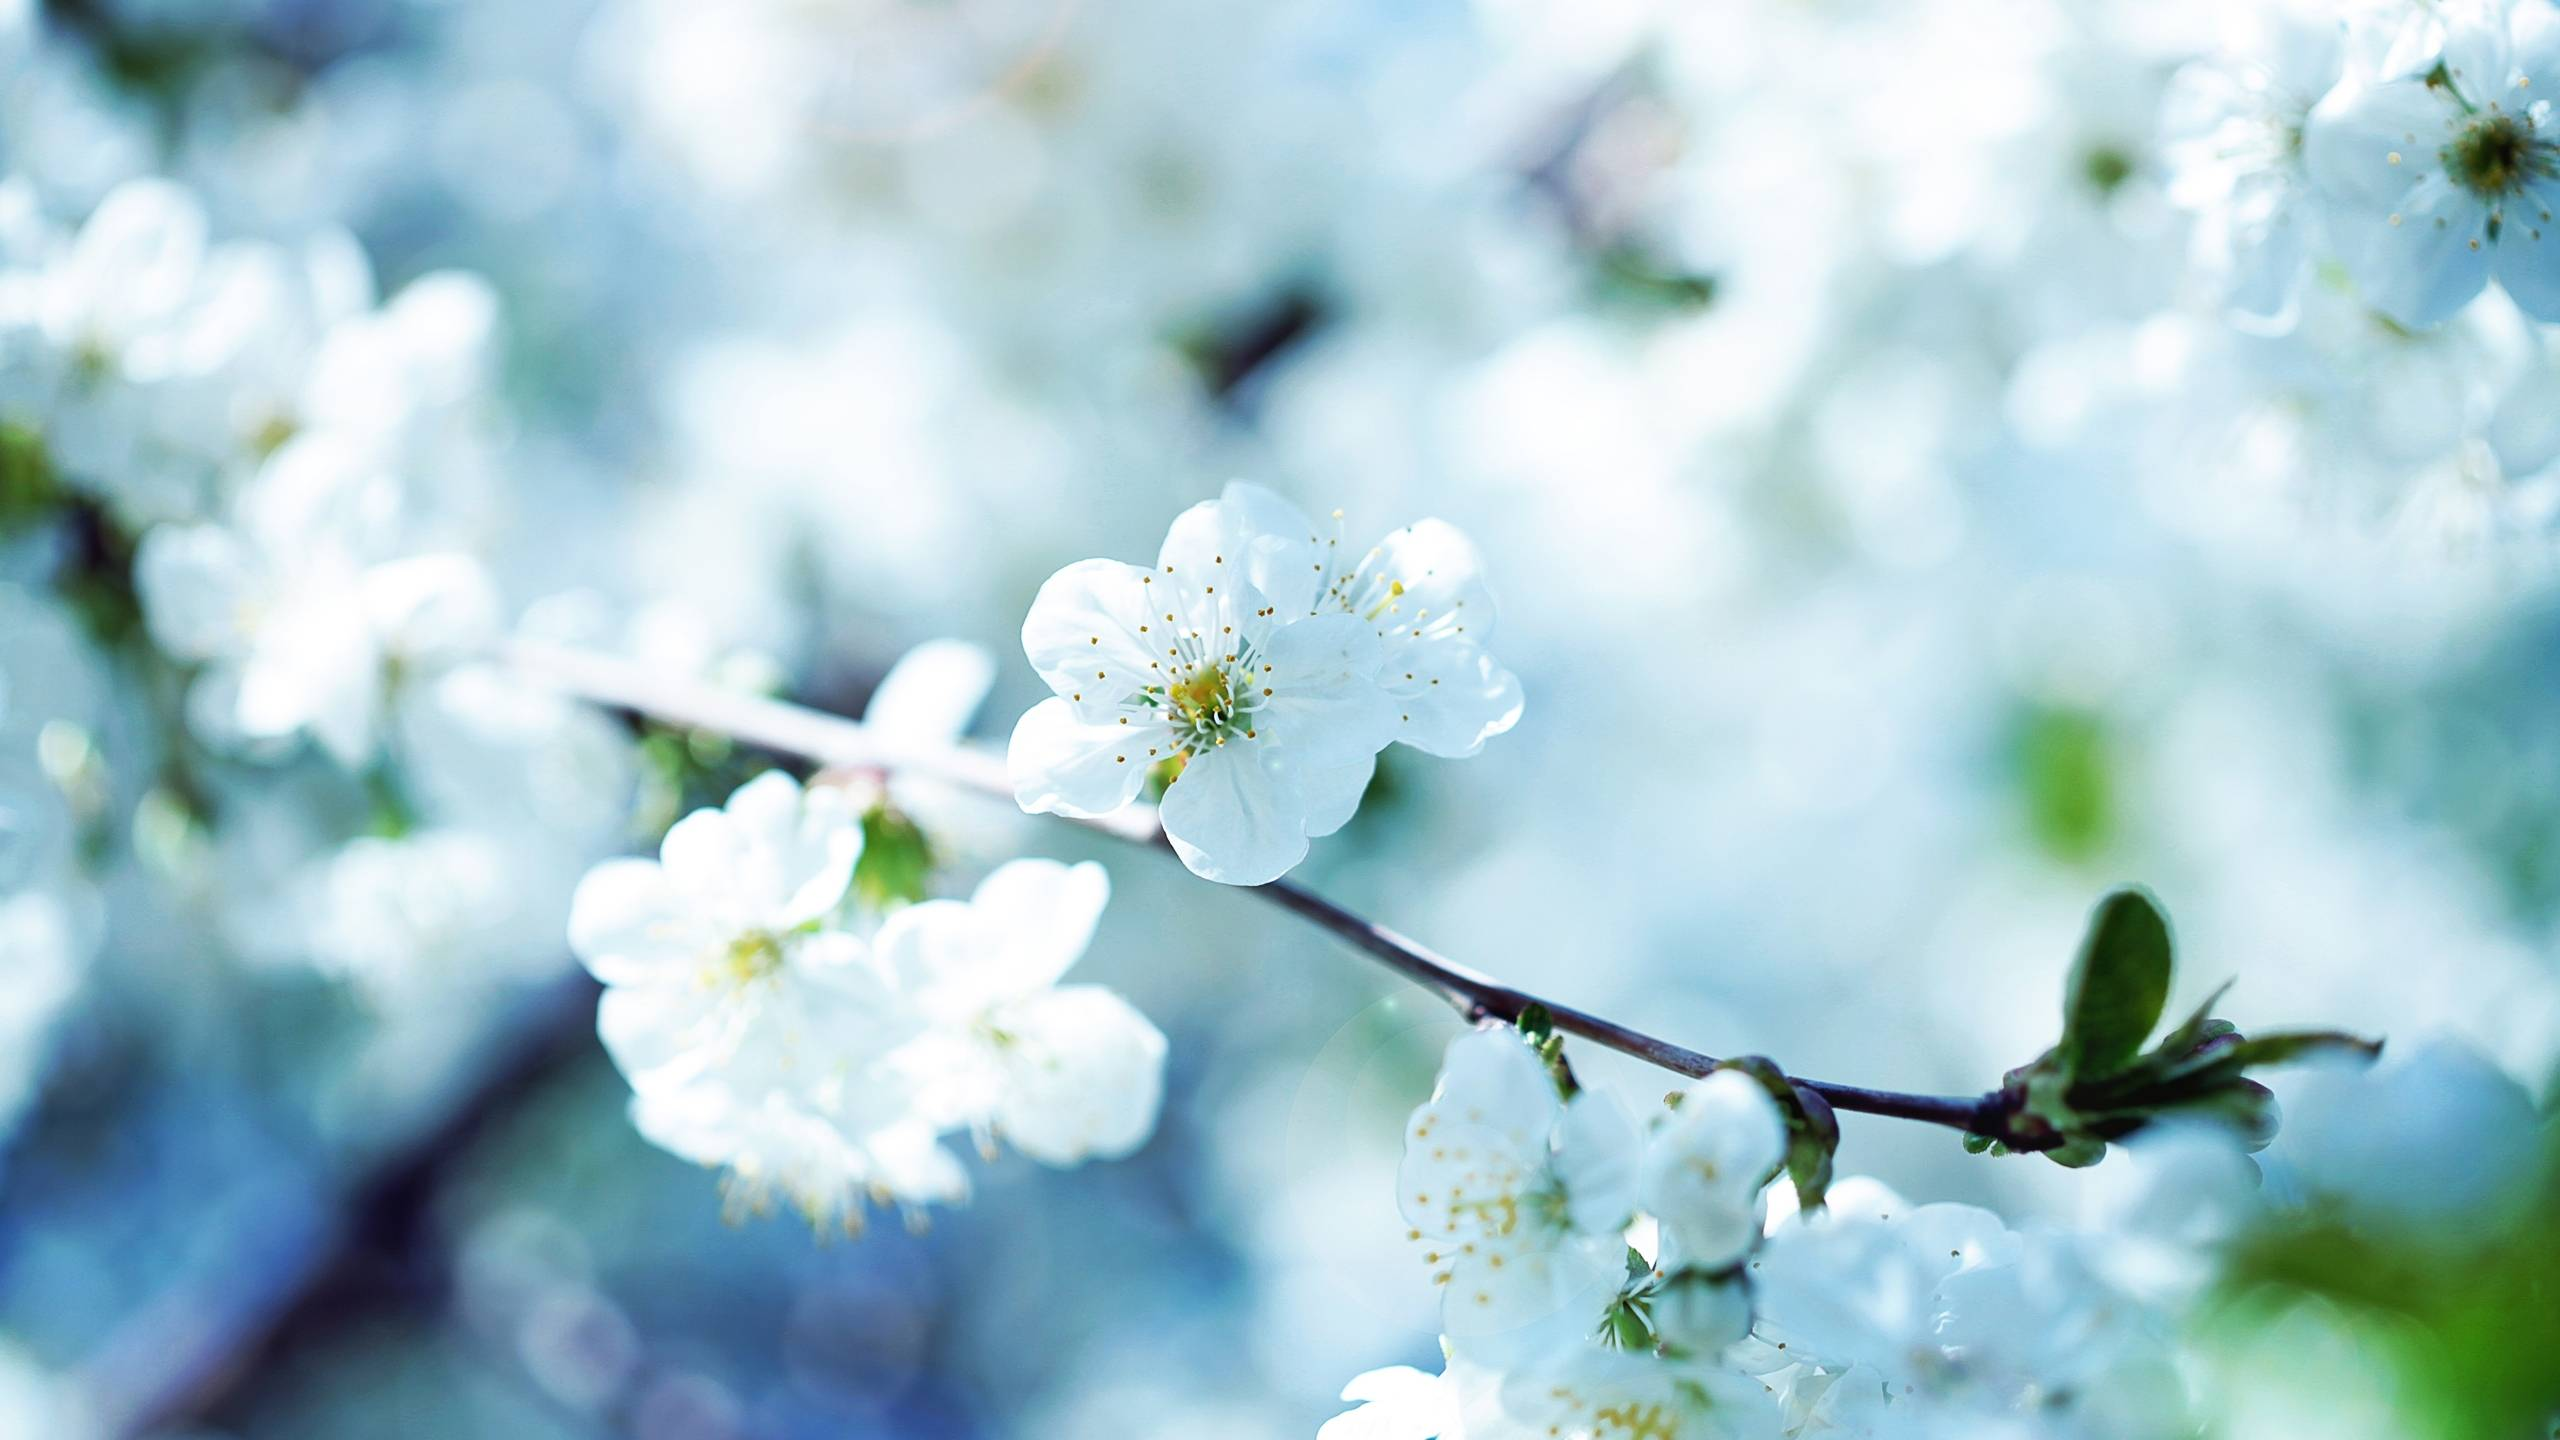 Cherry blossom white flowers branch close up hd wallpaper zoomwalls - Nature Spring Season Blossoms Flowers Wallpape 901 Wallpaper